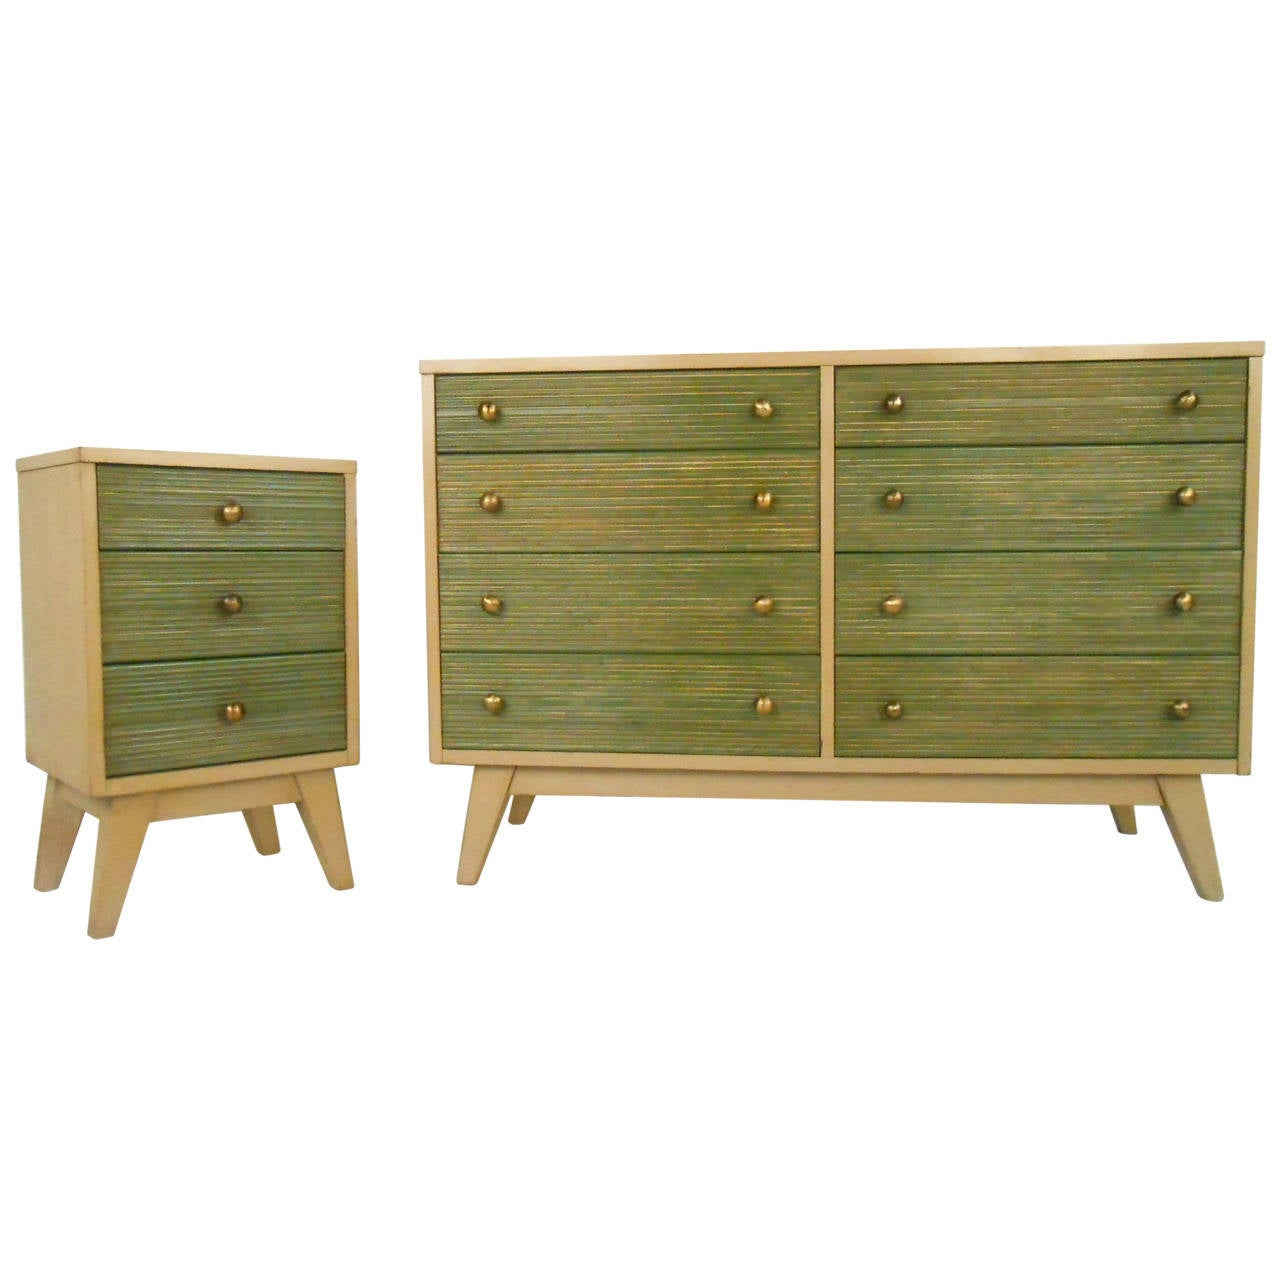 Matching mid century dresser and nightstand at 1stdibs for Contemporary dressers and nightstands